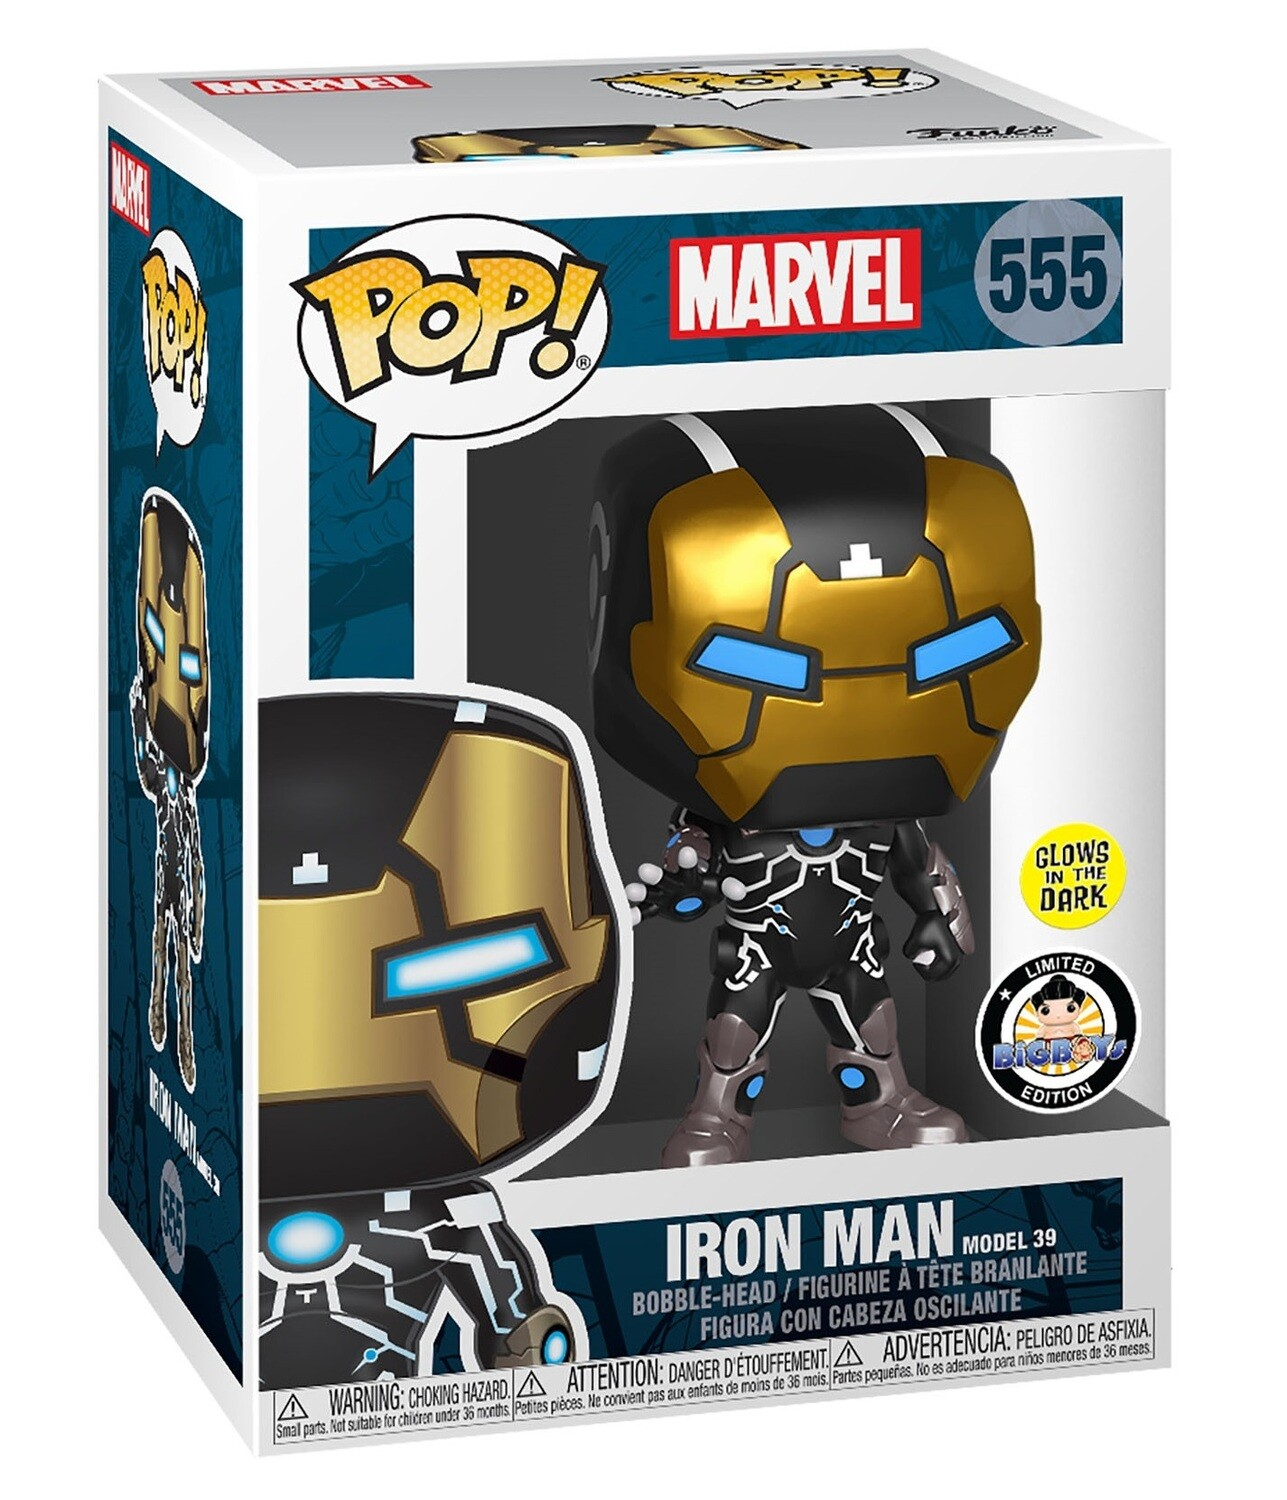 POP Marvel: 80th - Iron Man Model 39 (GW) Big Boys Toy Store Exclusive Pop! Vinyl Figure